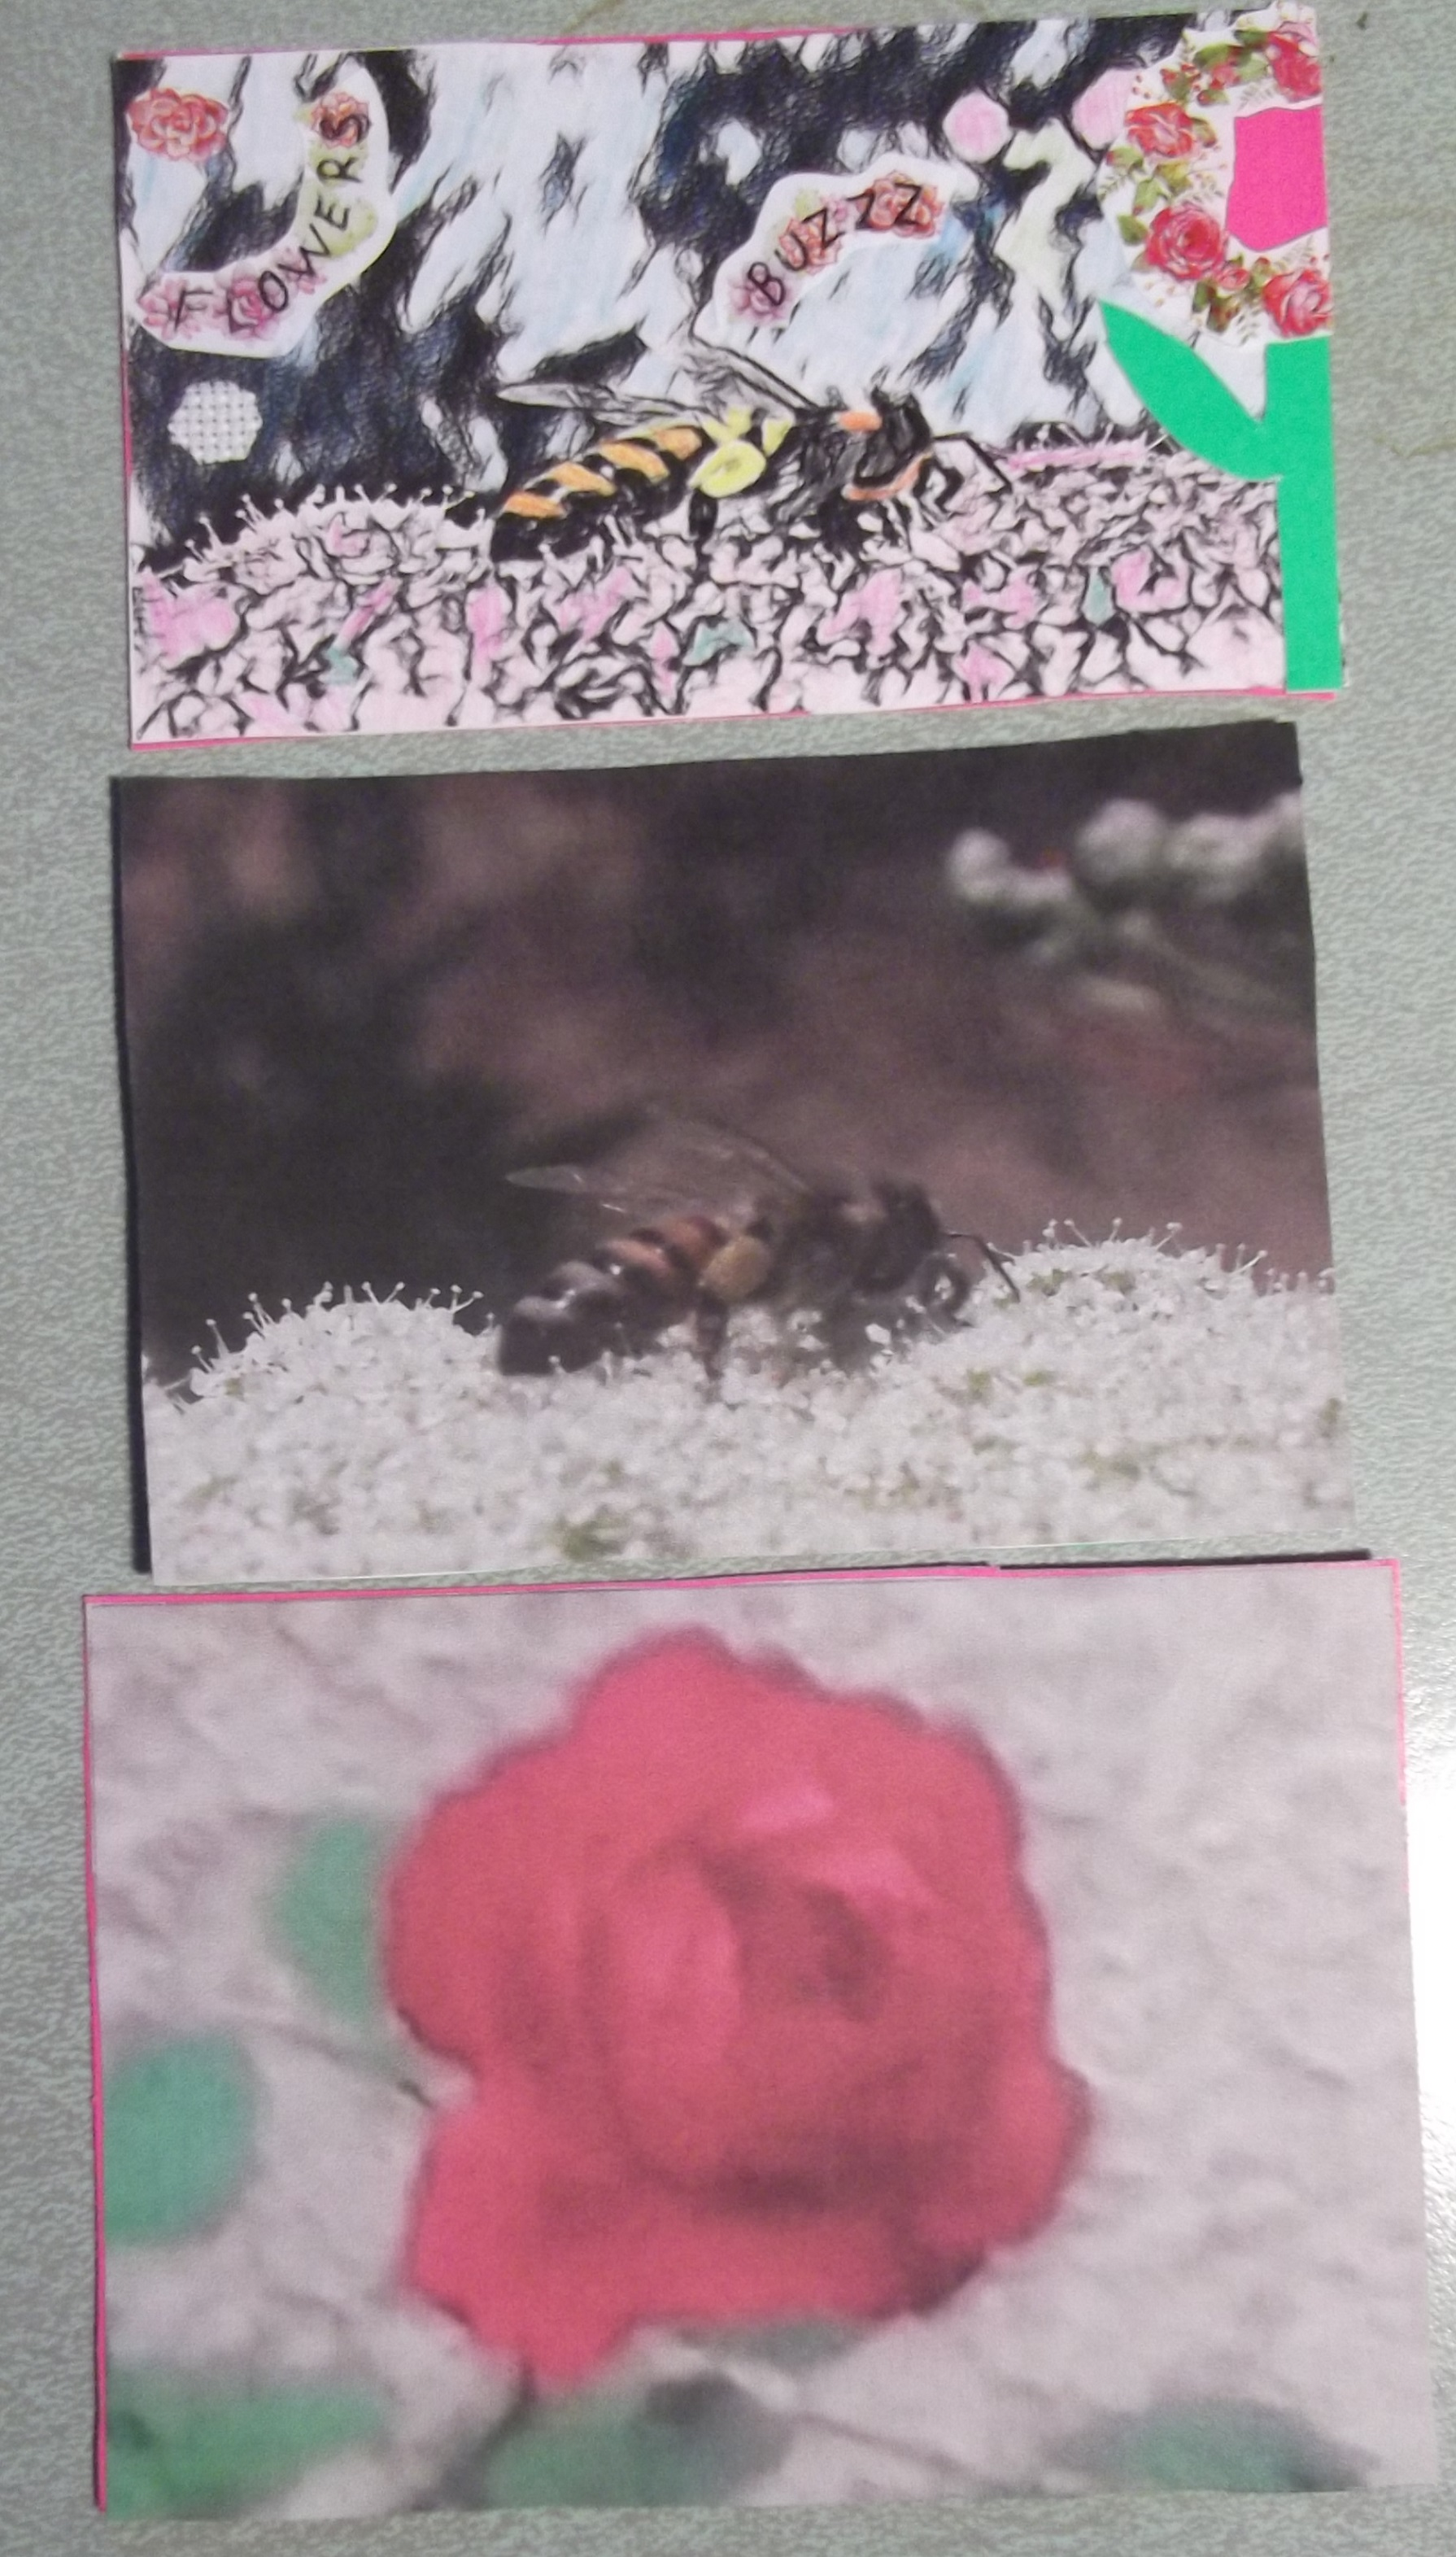 Photo I took of three Artist trading cards I made today